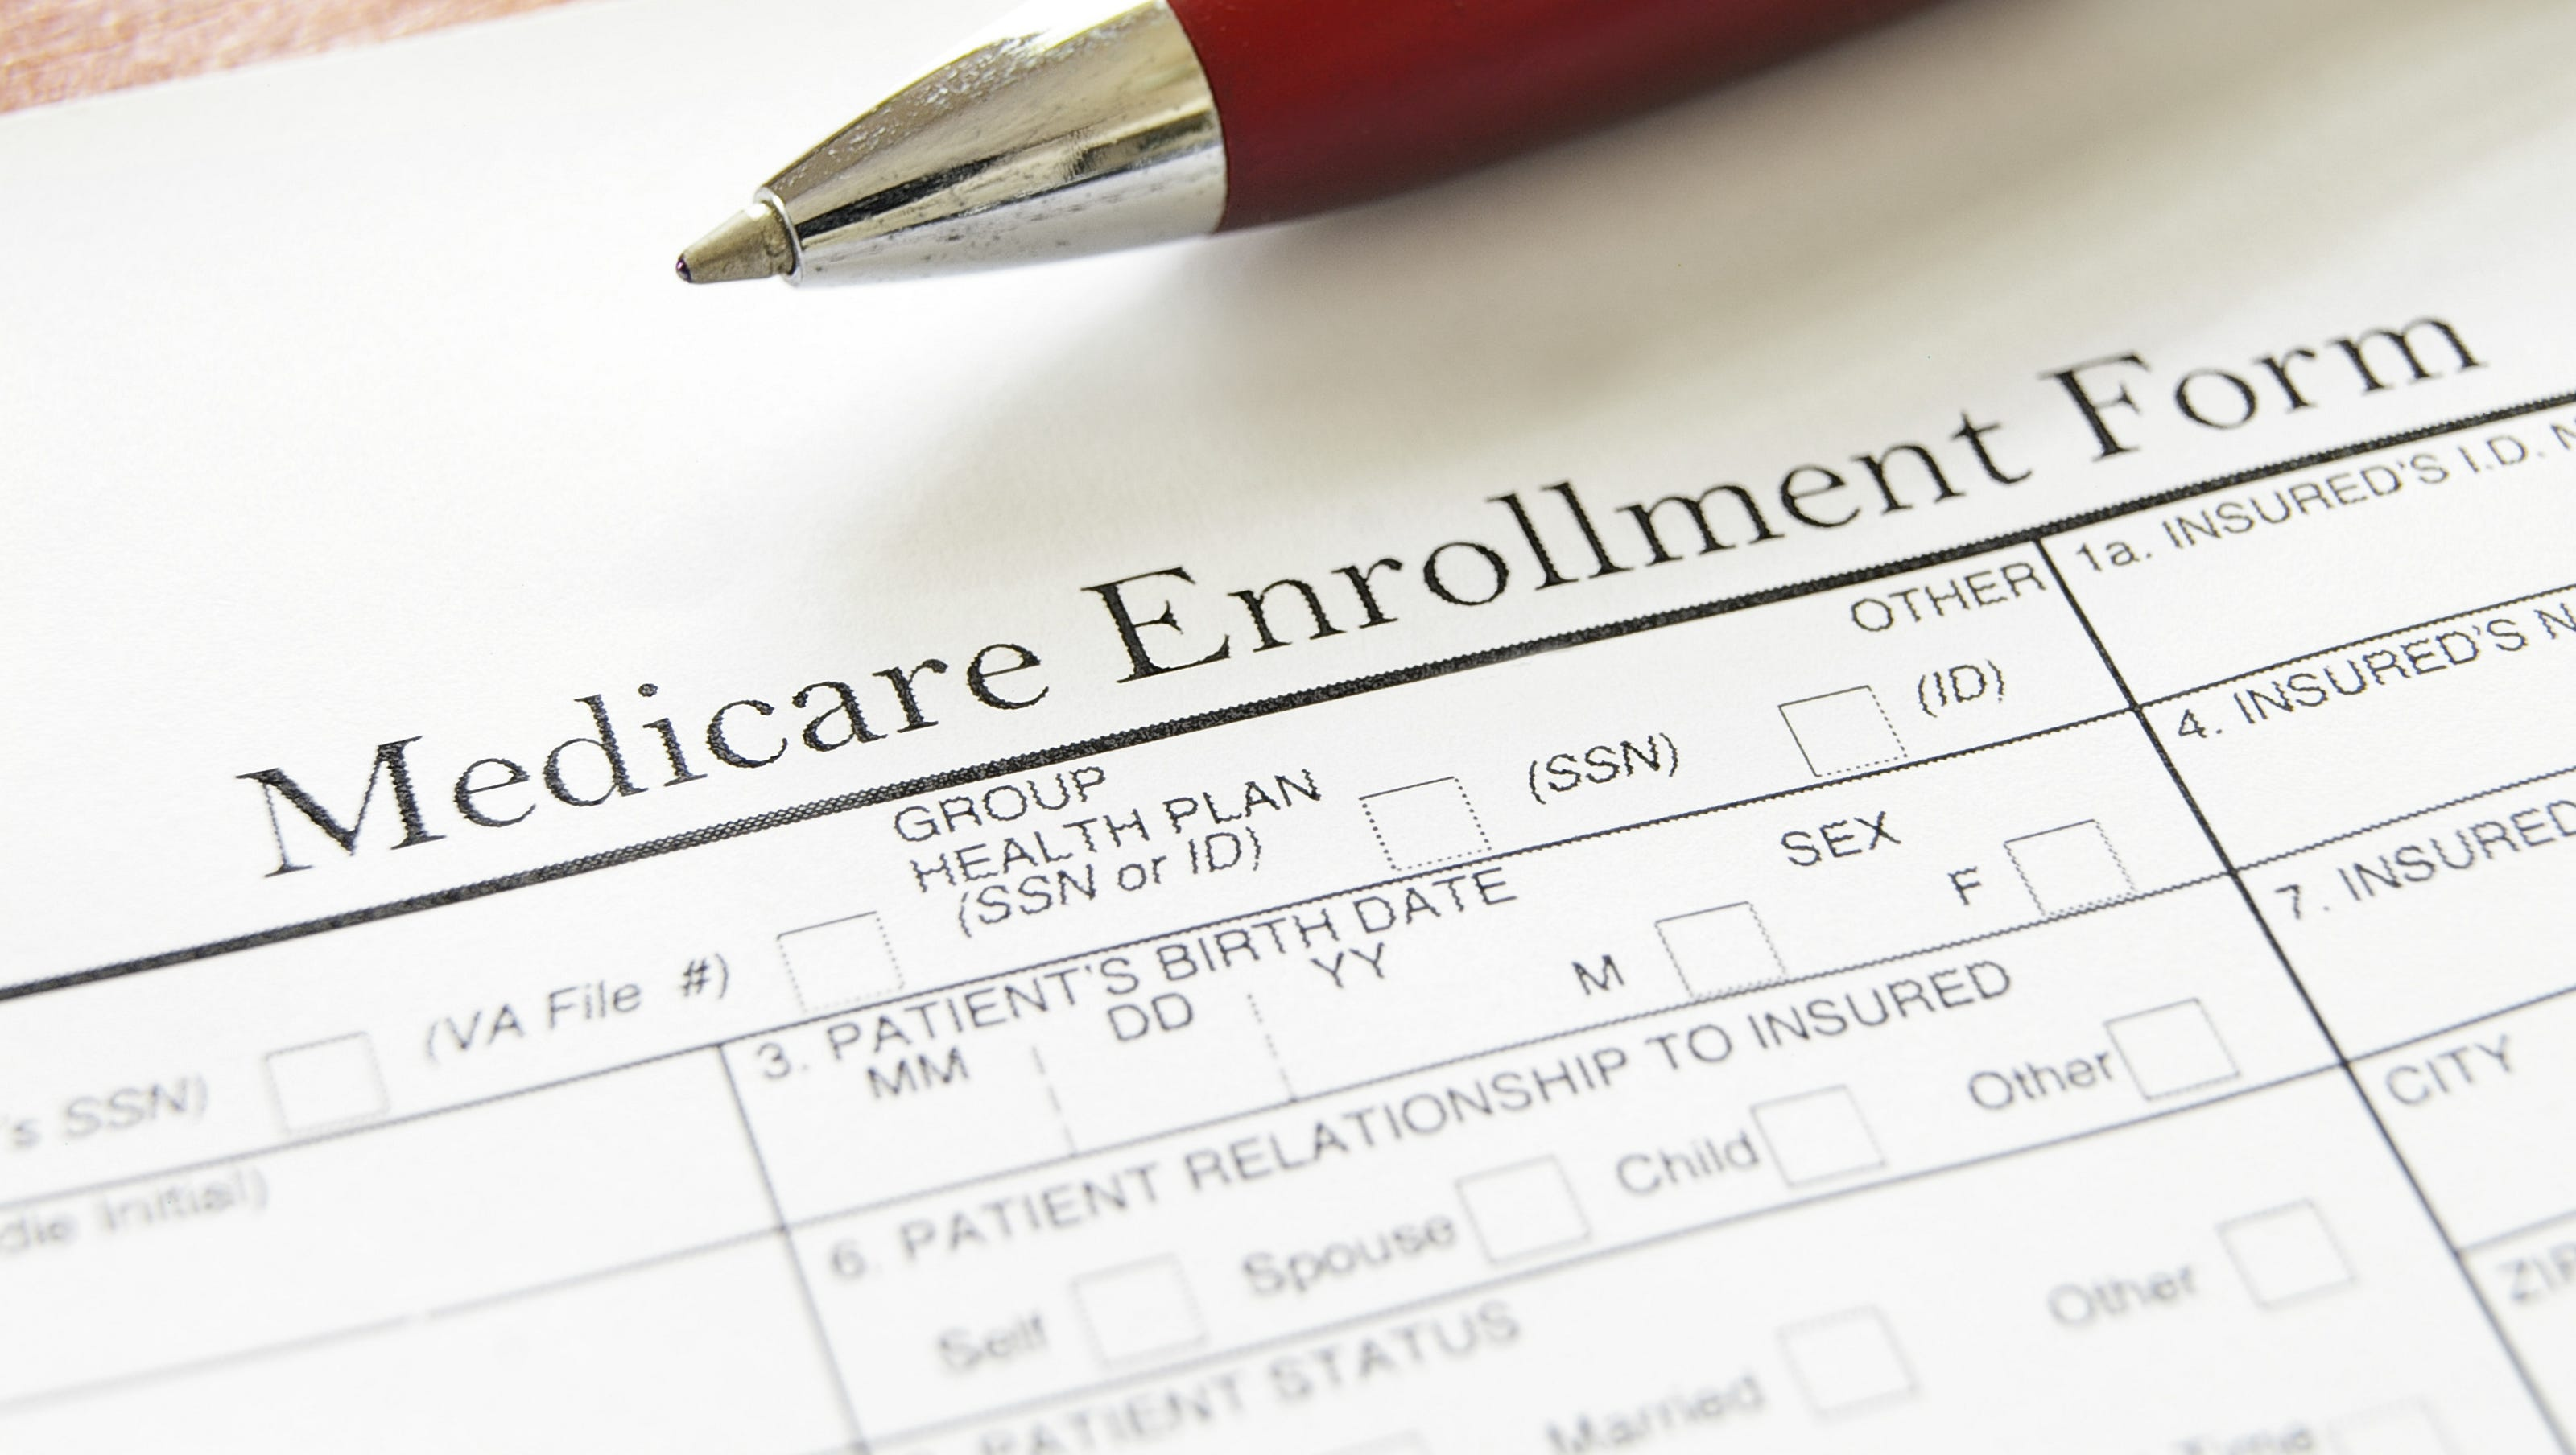 2017 12 08 Latino Health Coverage Might Slip During Open Enrollment Season  >> Latino Health Coverage Poised To Slip During Open Enrollment Season